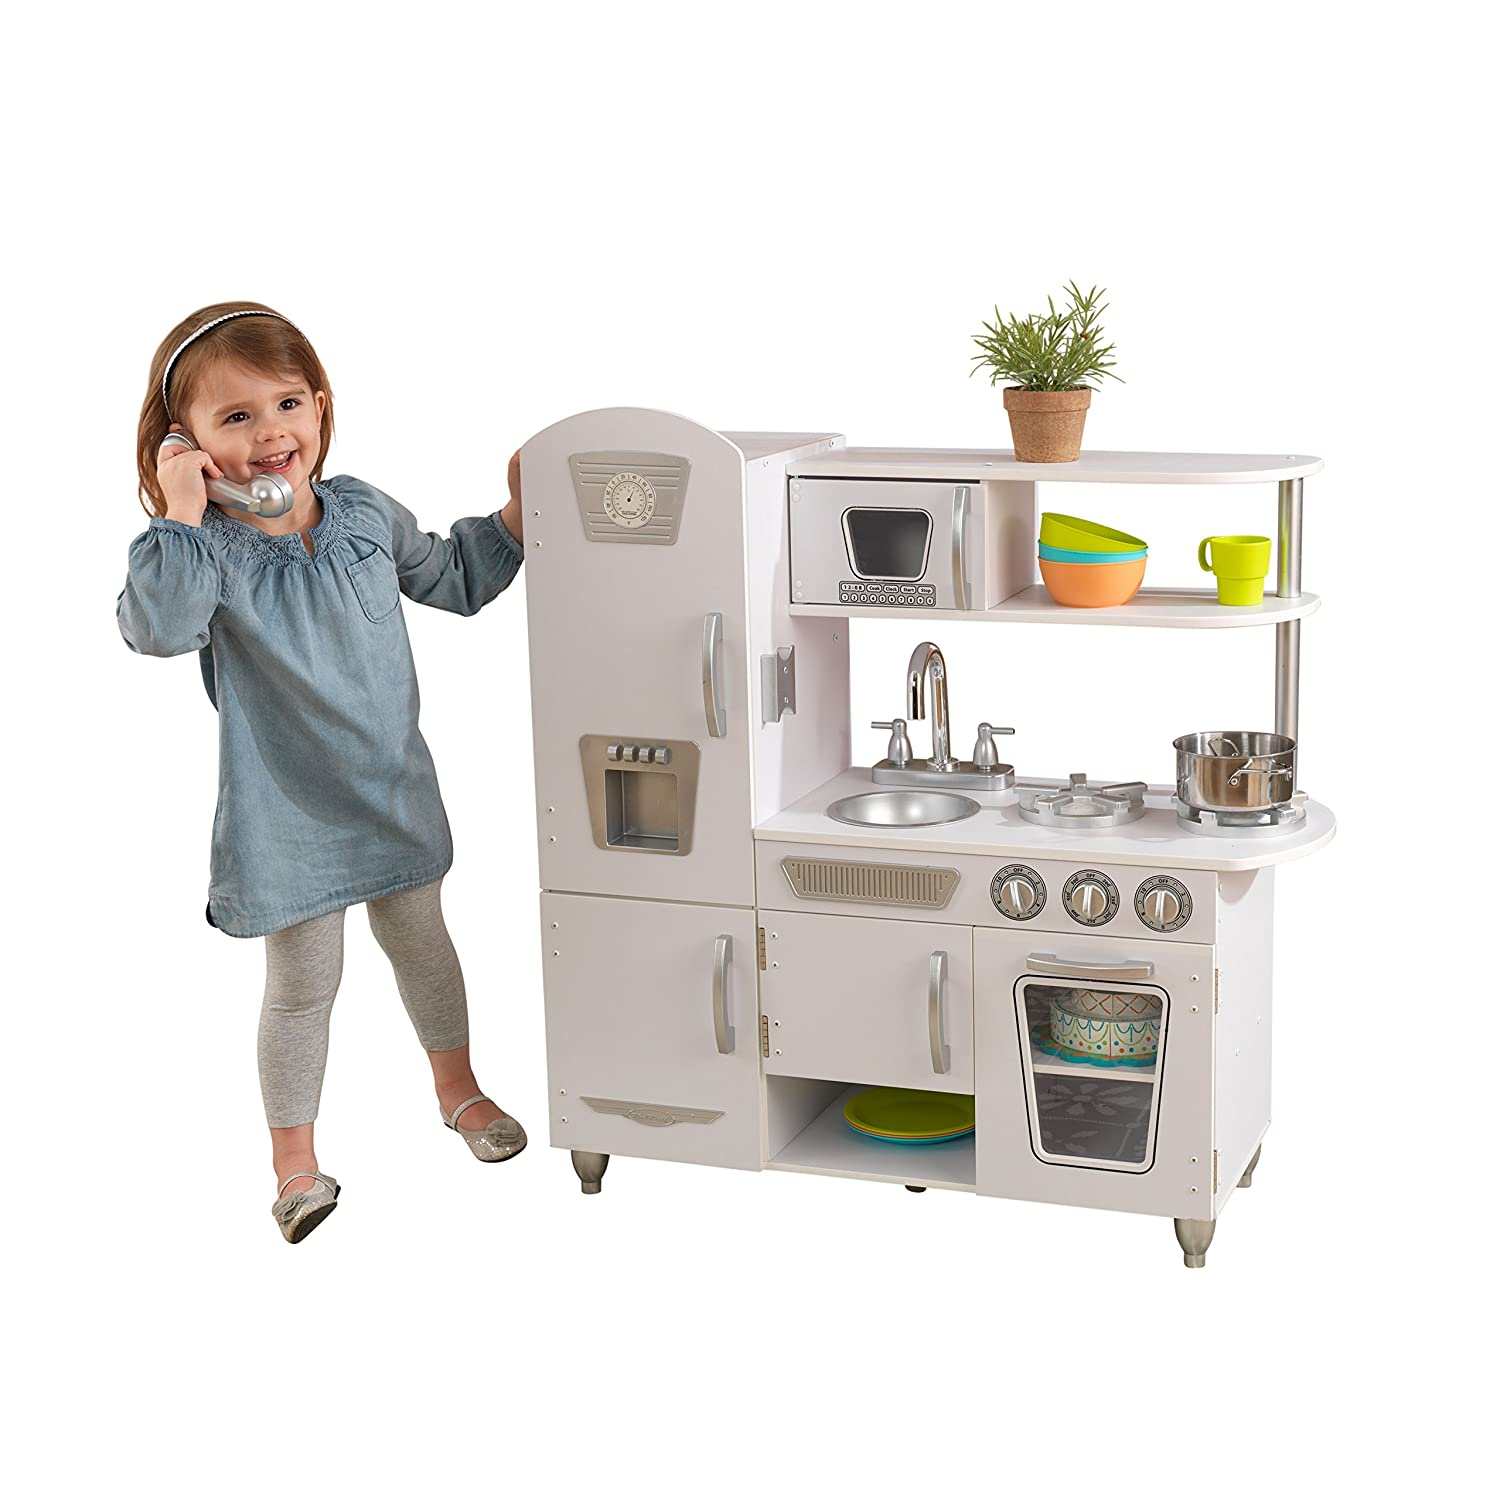 Amazon.com: KidKraft Vintage Kitchen - White: Toys & Games